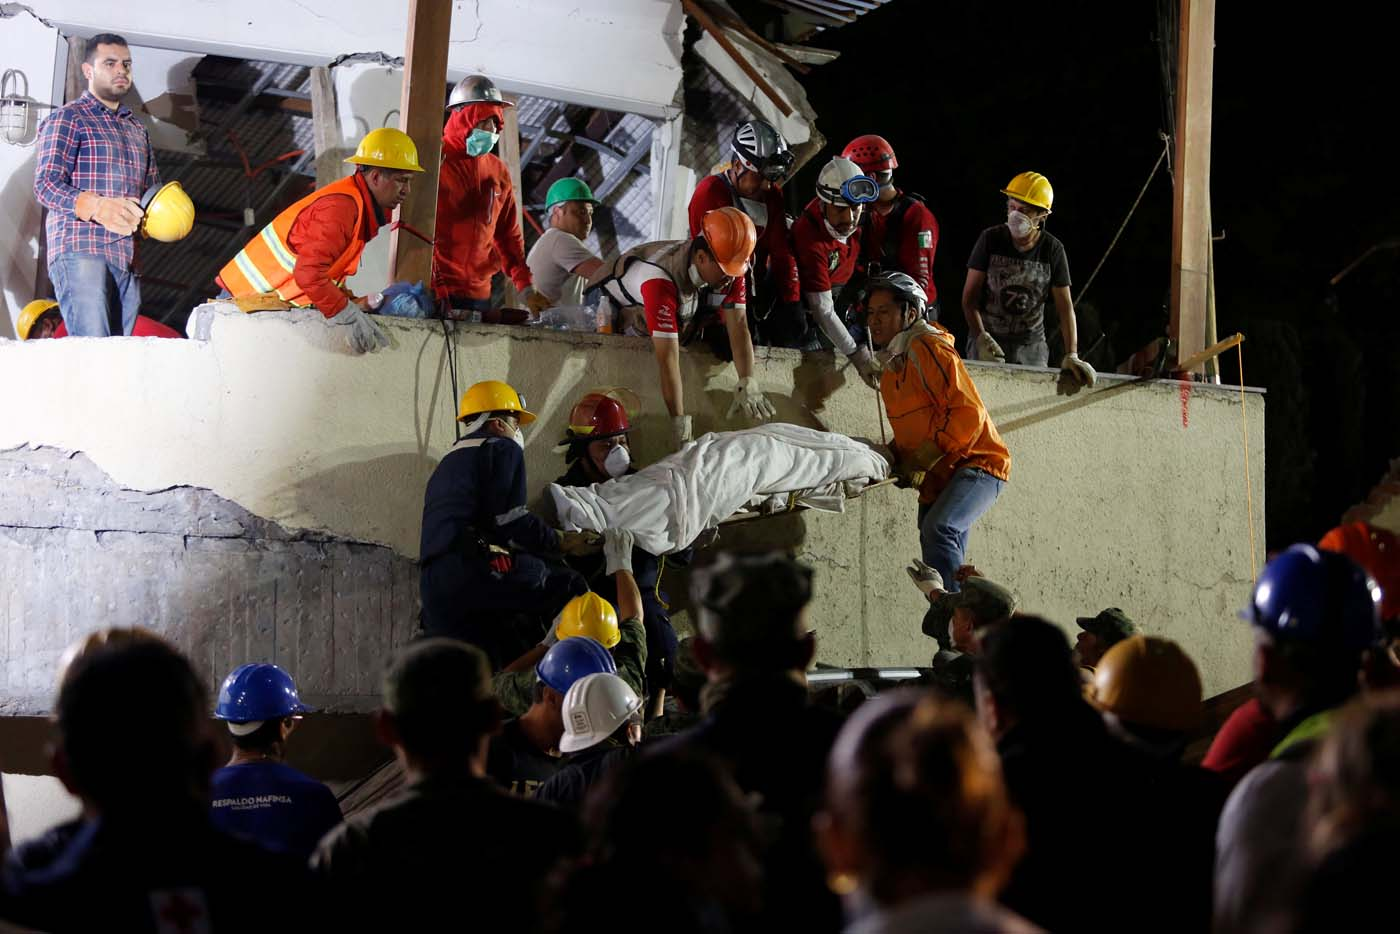 Rescue workers remove a dead body after searching through rubble in a floodlit search for students at Enrique Rebsamen school in Mexico City, Mexico September 20, 2017. REUTERS/Carlos Jasso